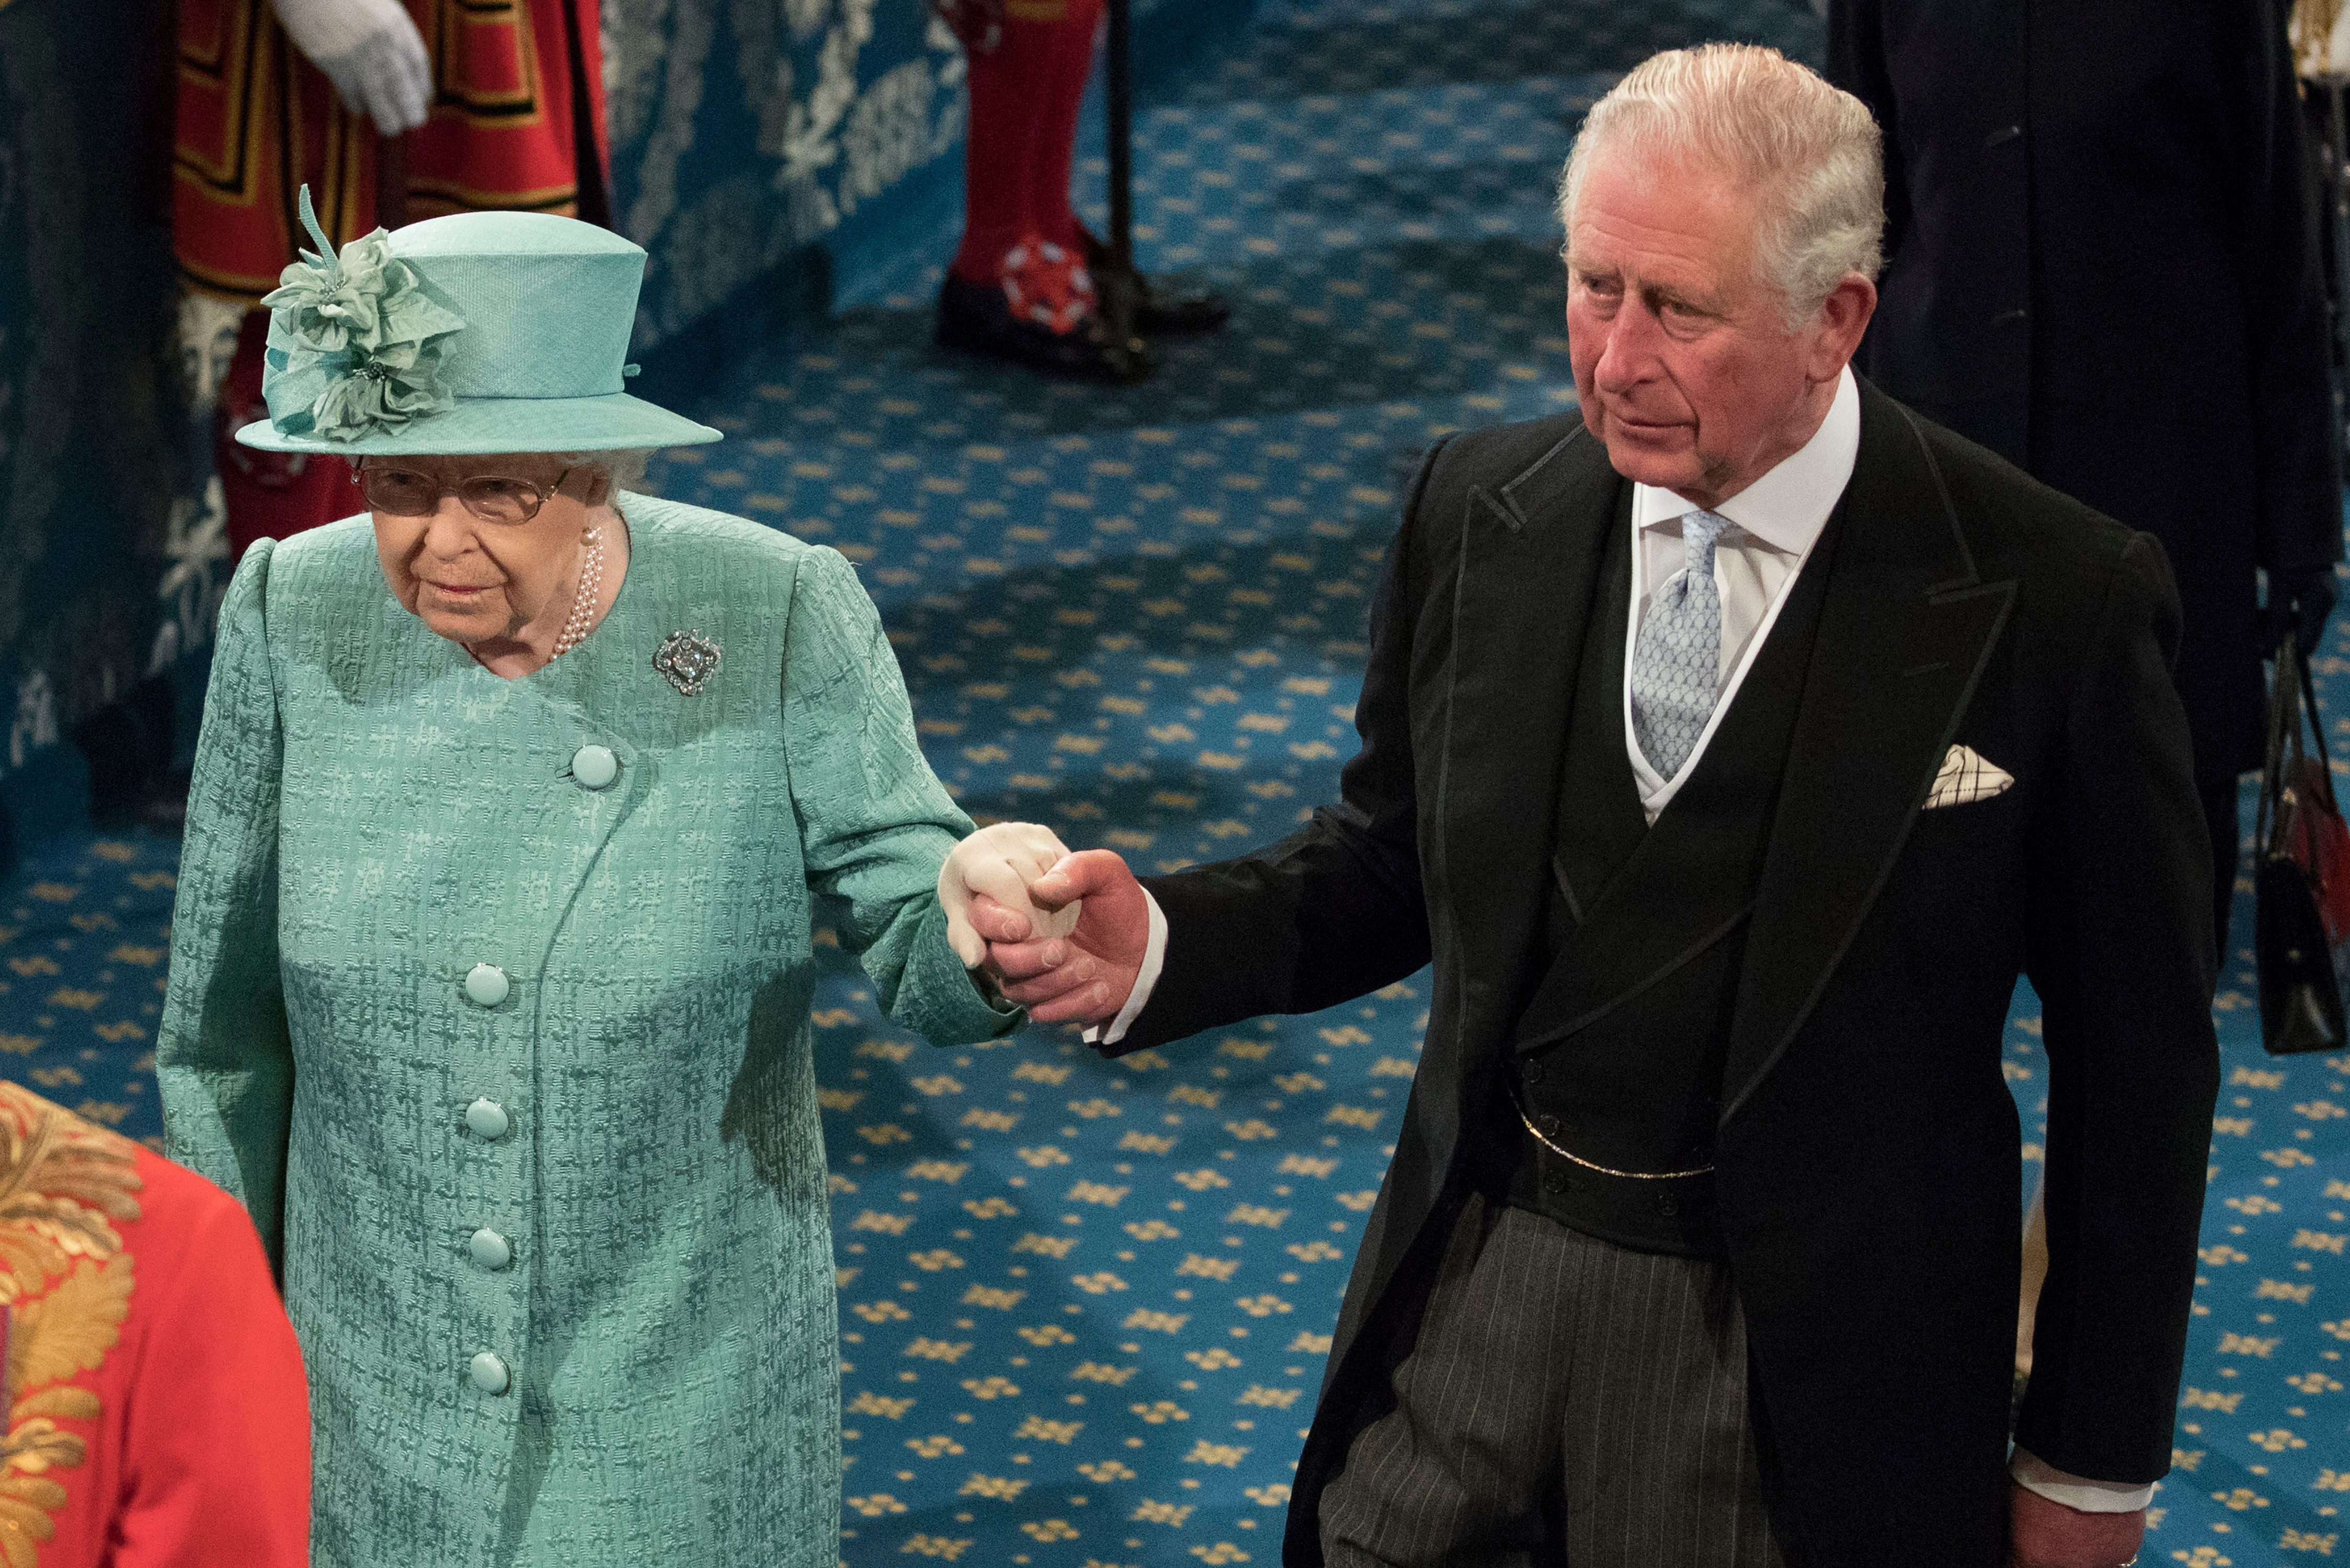 Queen Elizabeth II and Prince Charles attend the Opening of Parliament at the Palace of Westminster 19 Dec 2019